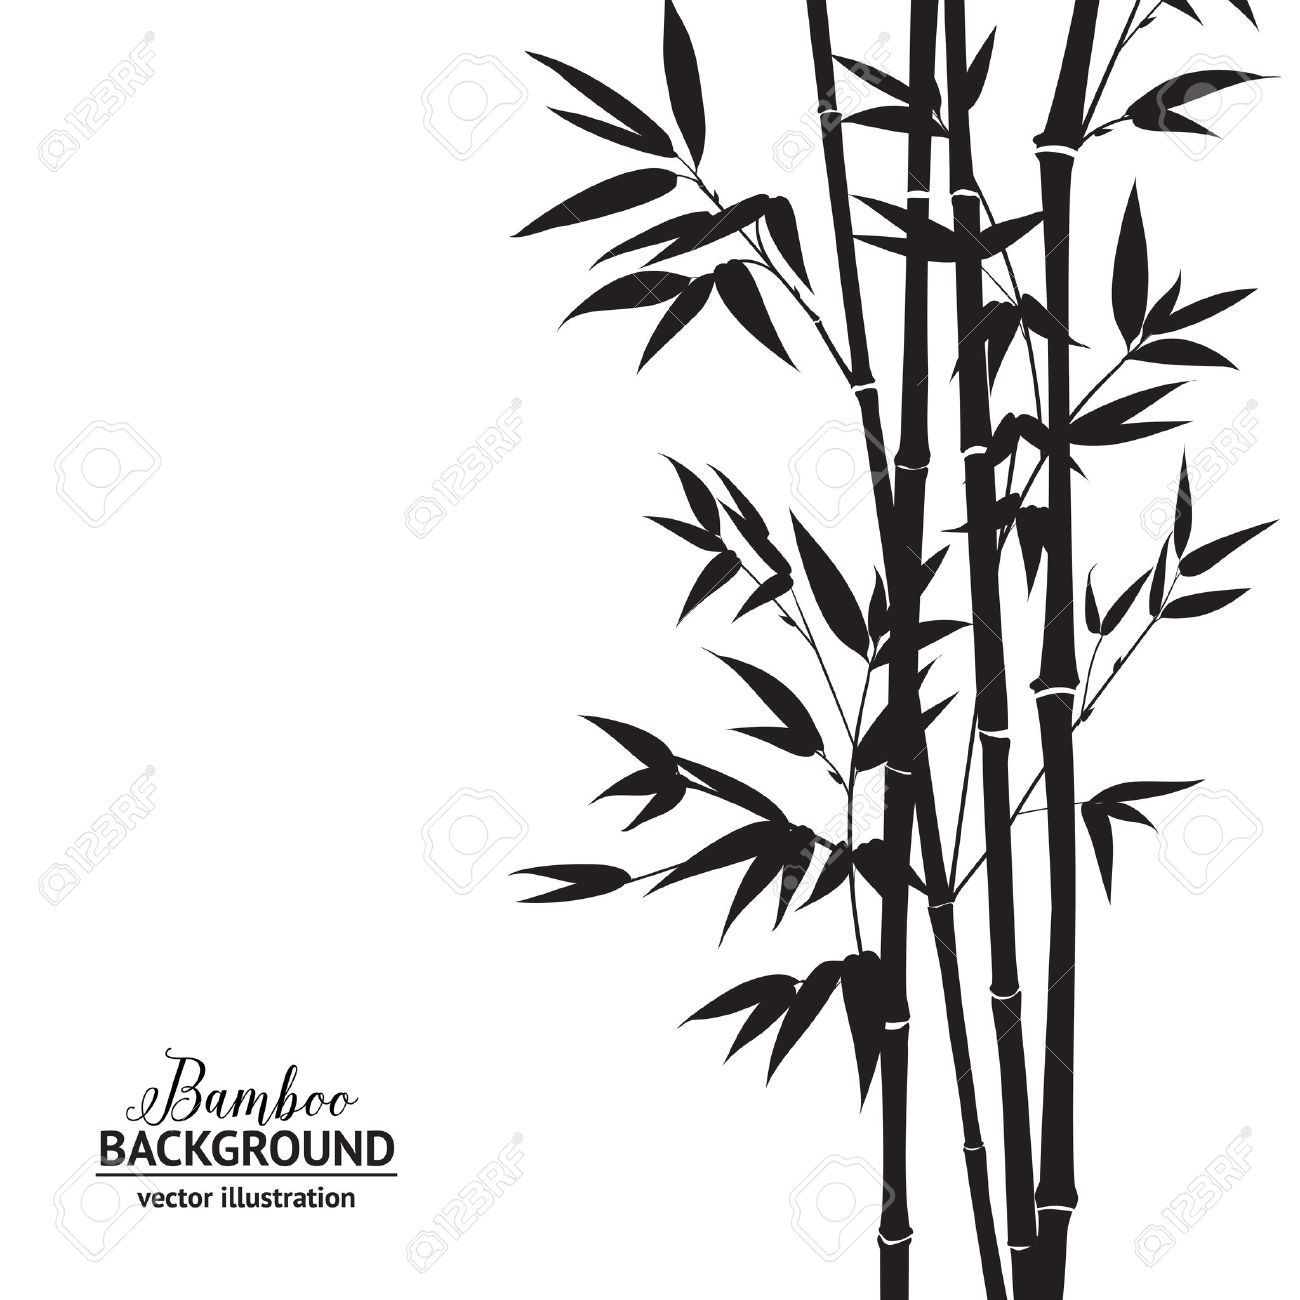 bamboo bush ink painting over white background vector illustration royalty free cliparts vectors and stock illustration image 36473716 bamboo bush ink painting over white background vector illustration